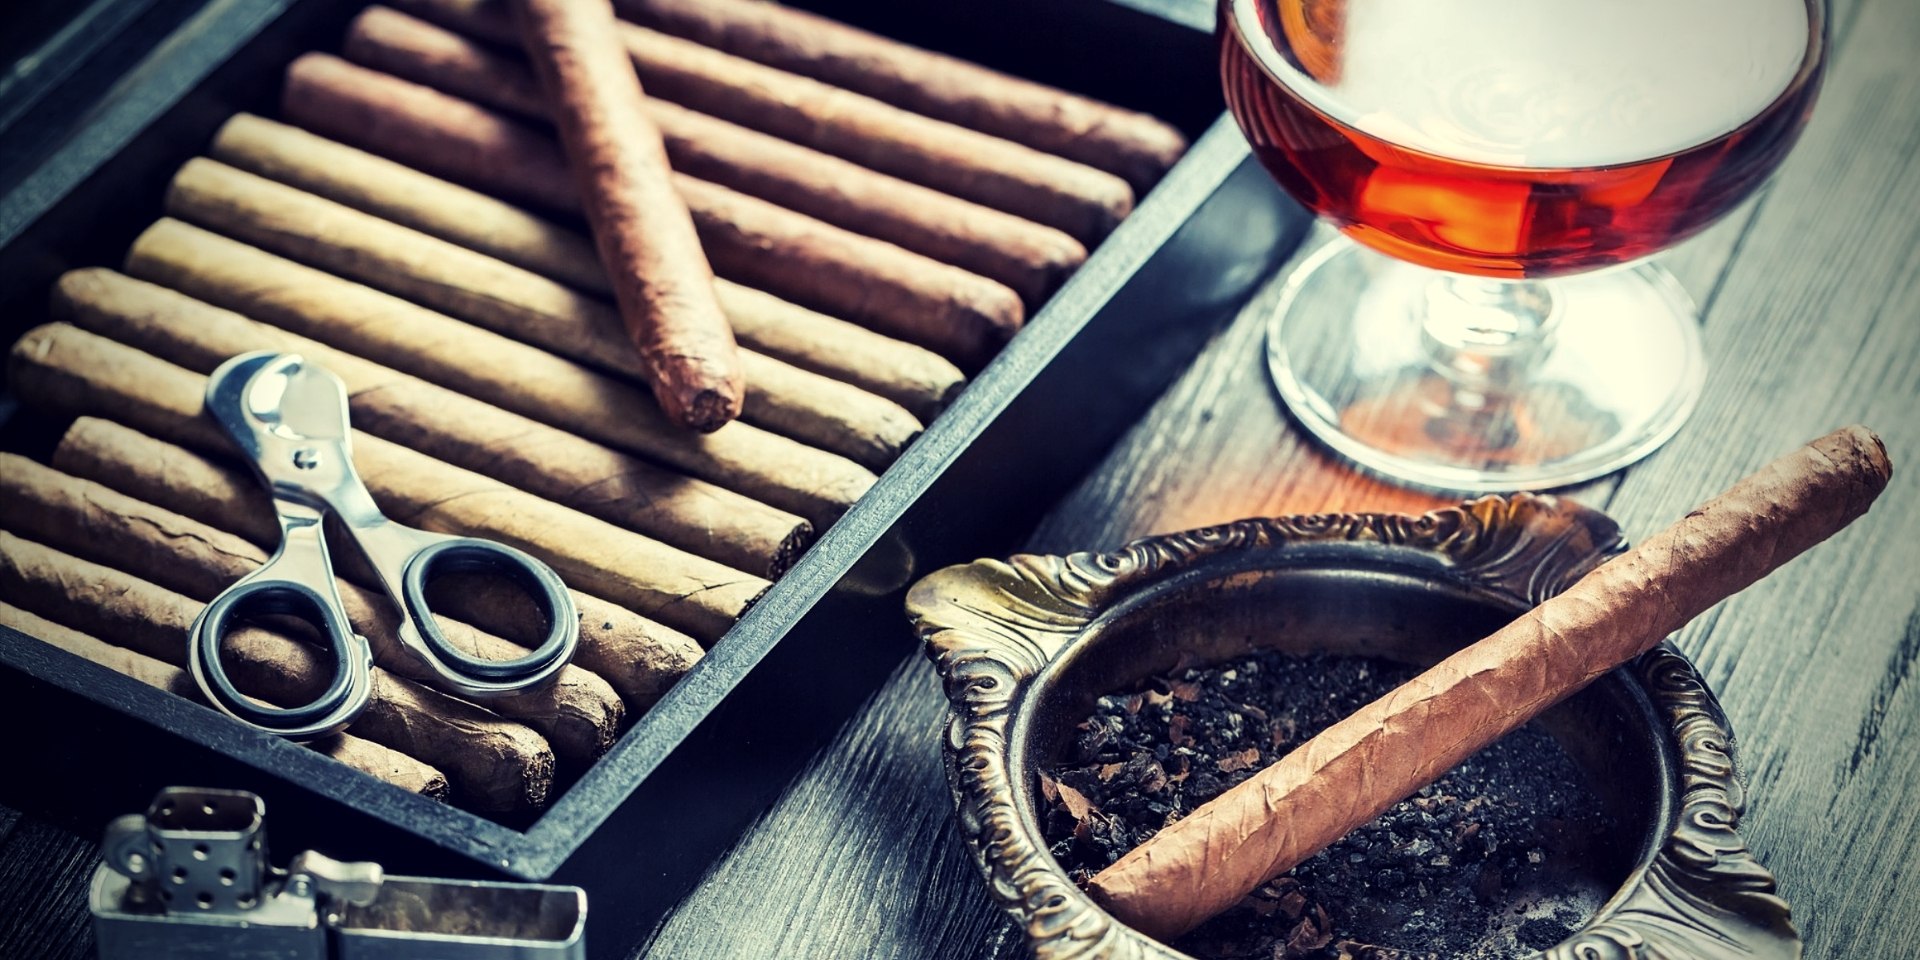 Nicotine and Testosterone Cigar in ashtray, lighter and cognac